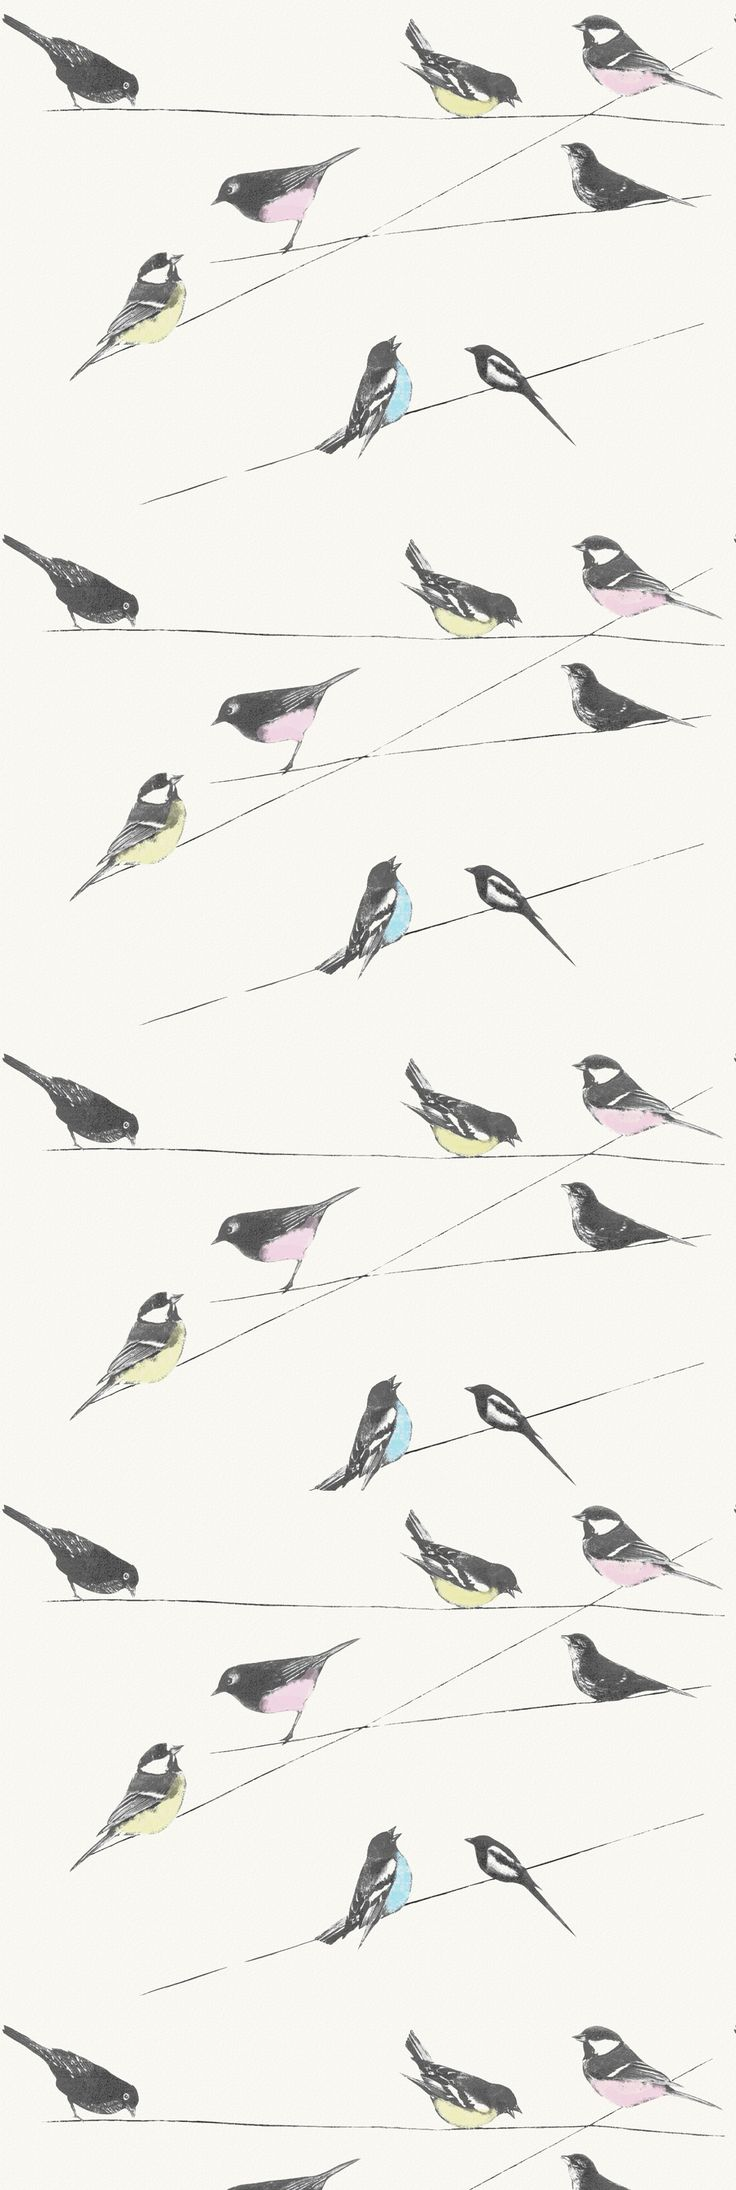 Our classic Garden Birds wallpaper. A Vintage feel wallpaper with little birds perched on wires.